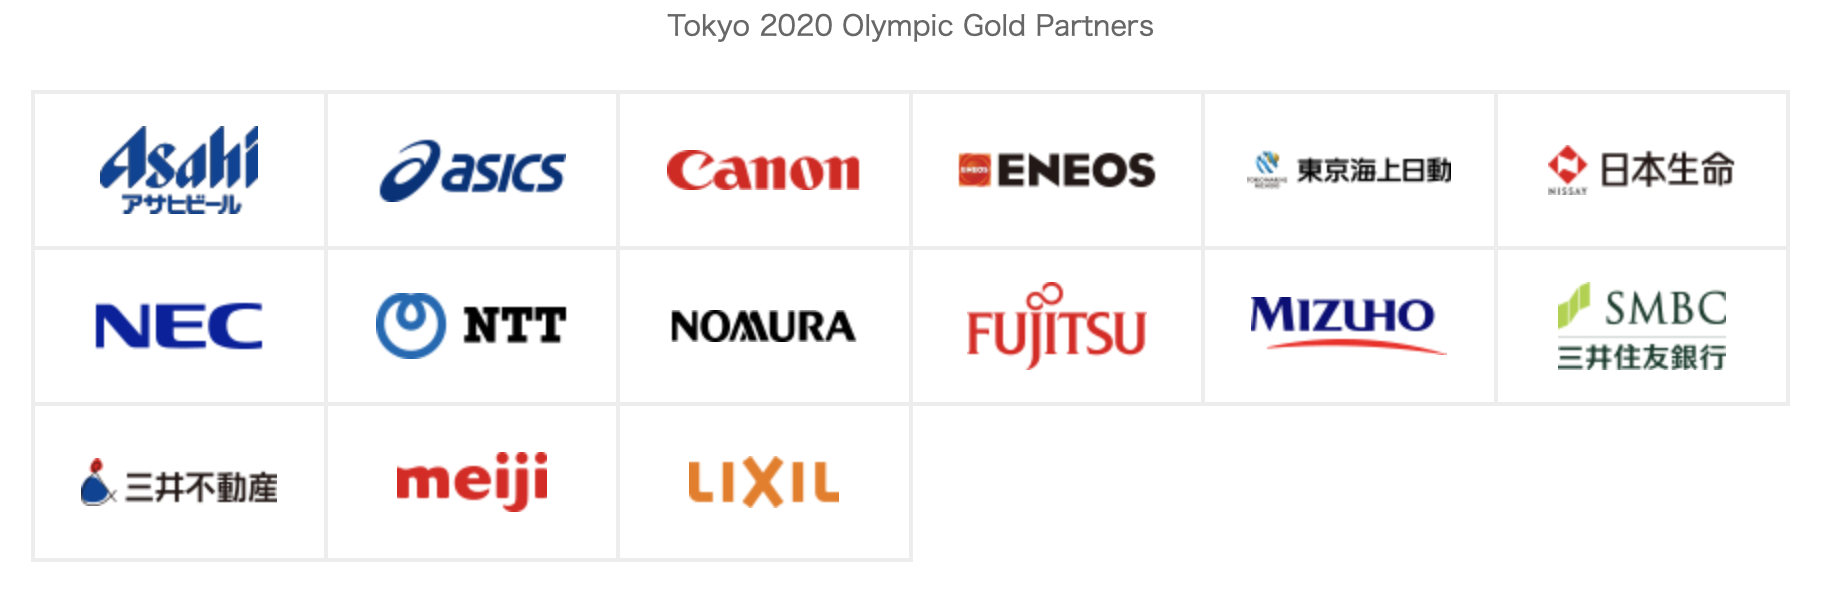 Tokyo 2020 Olympic Sponsors - Gold Partners